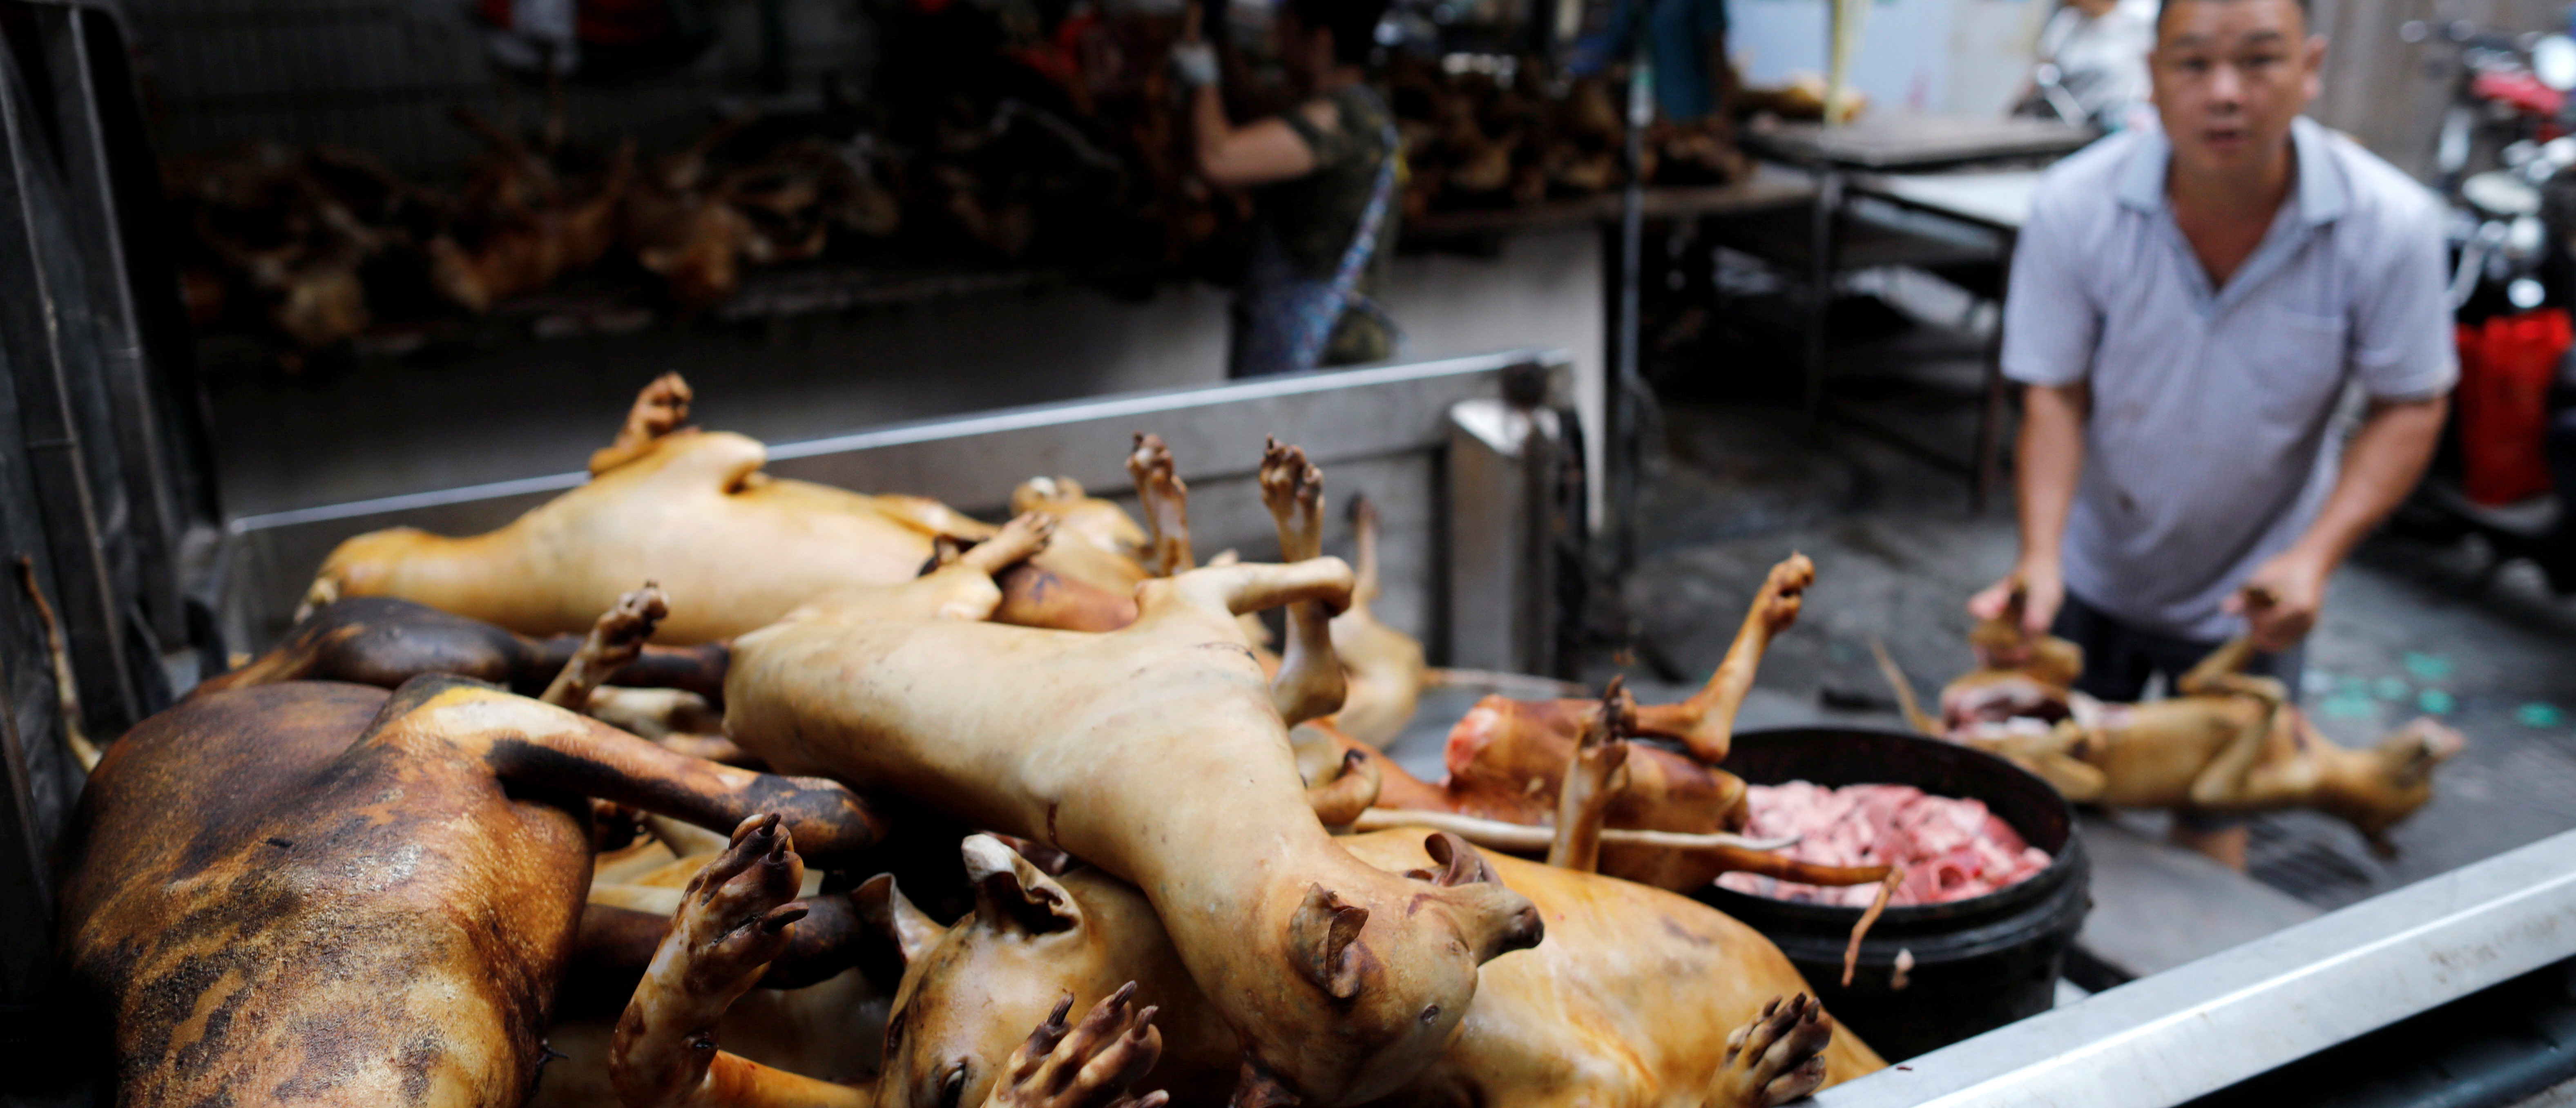 Chinese Markets Reopen— And They Still Sell Bats, Dogs And Cats